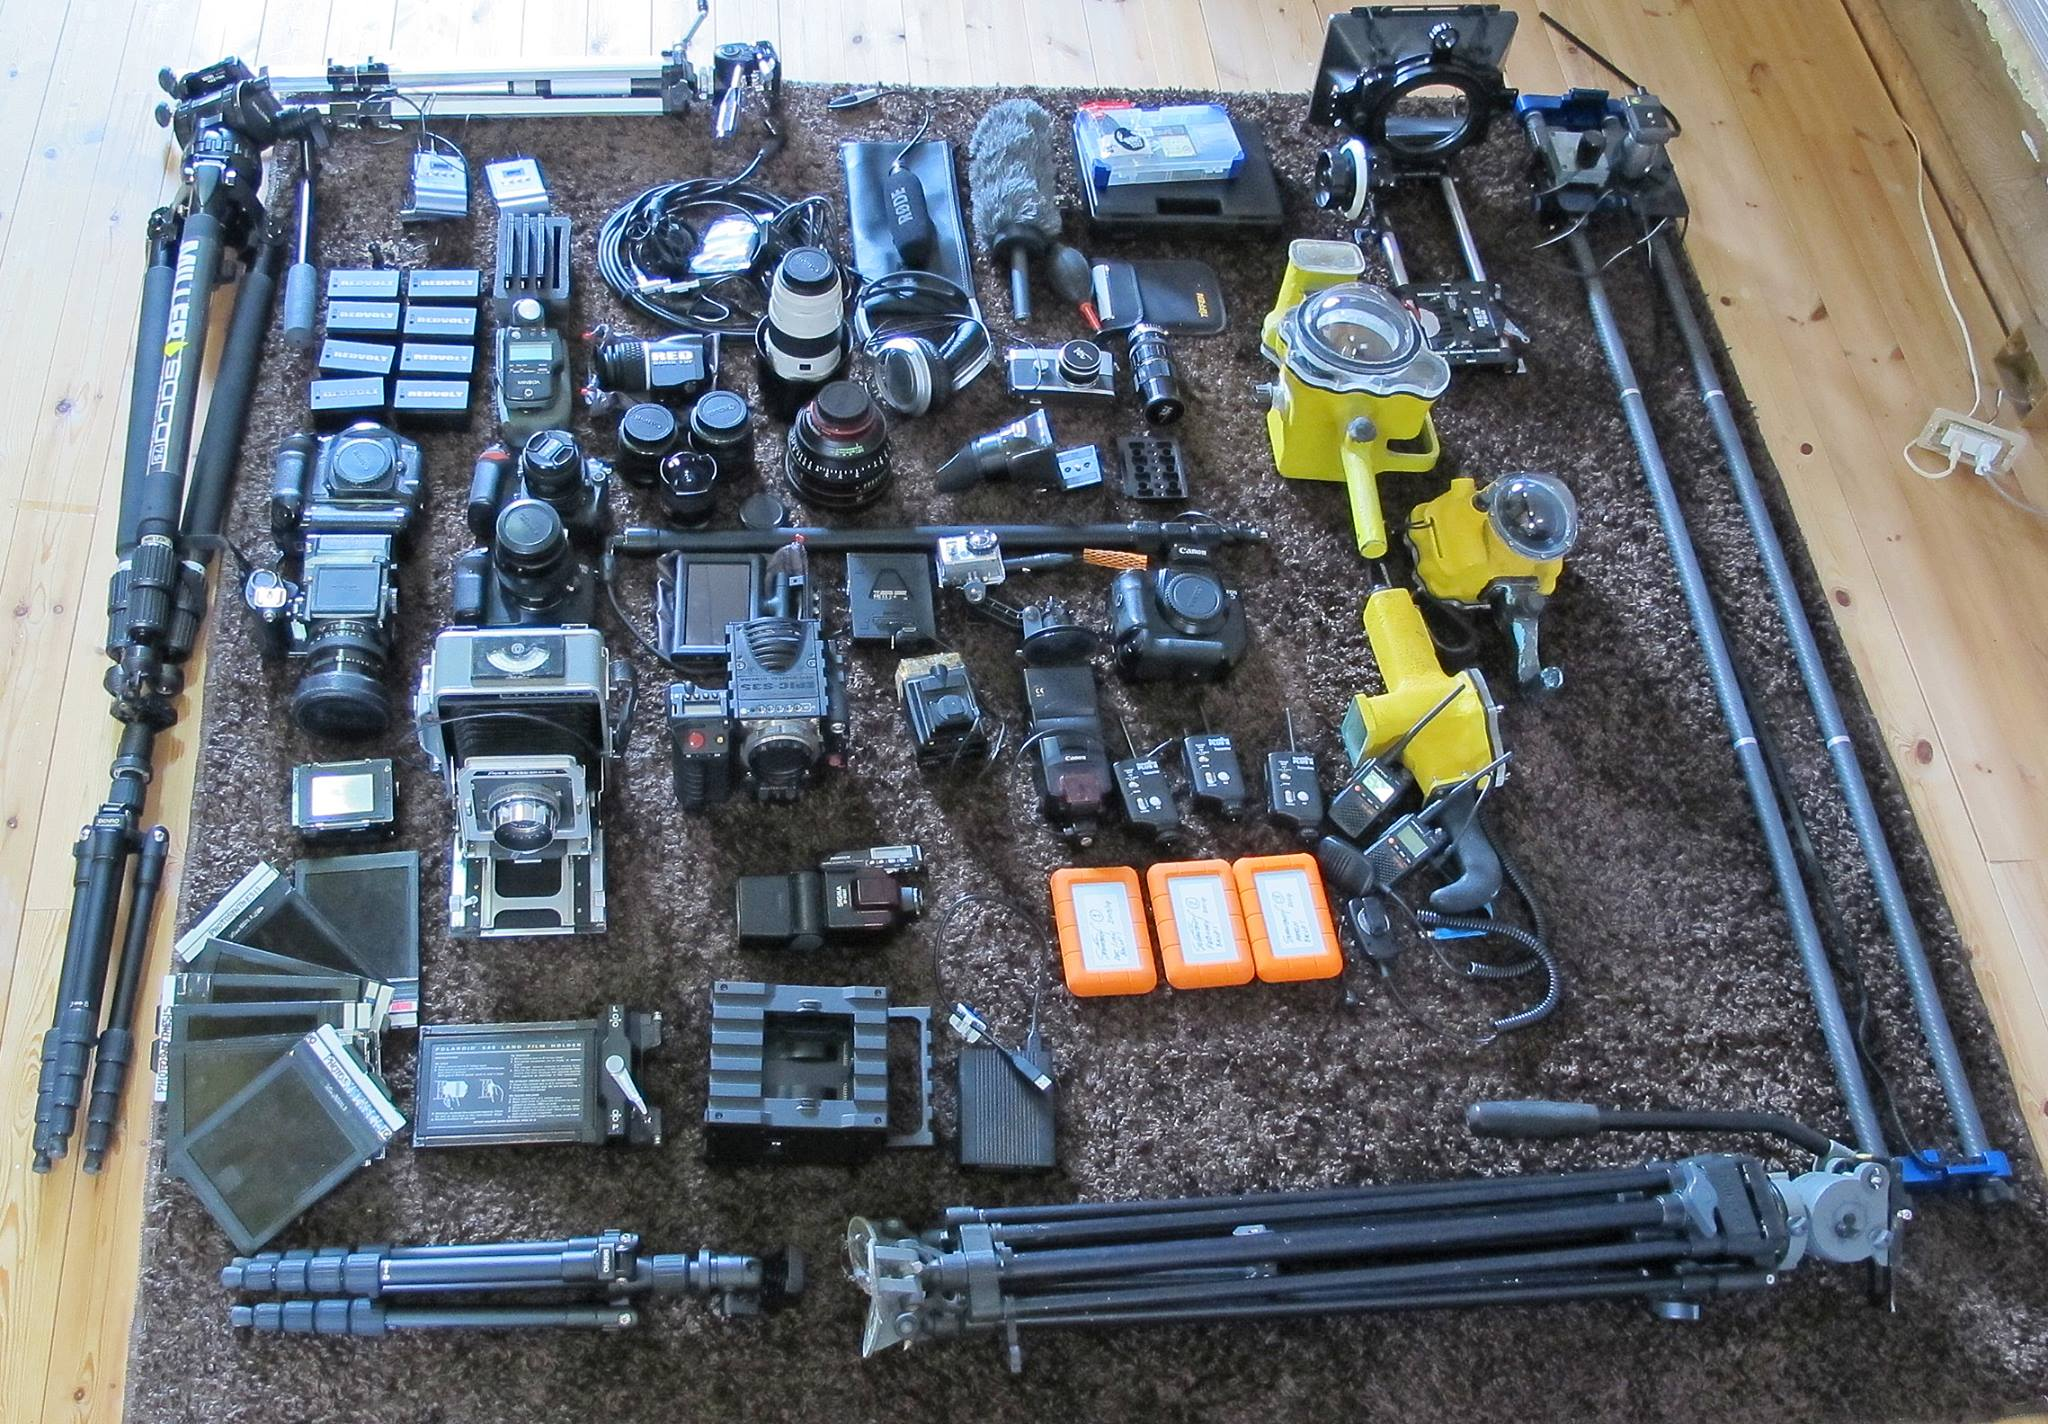 Some of Shanes equipment (image: Shane Peel/Facebook)